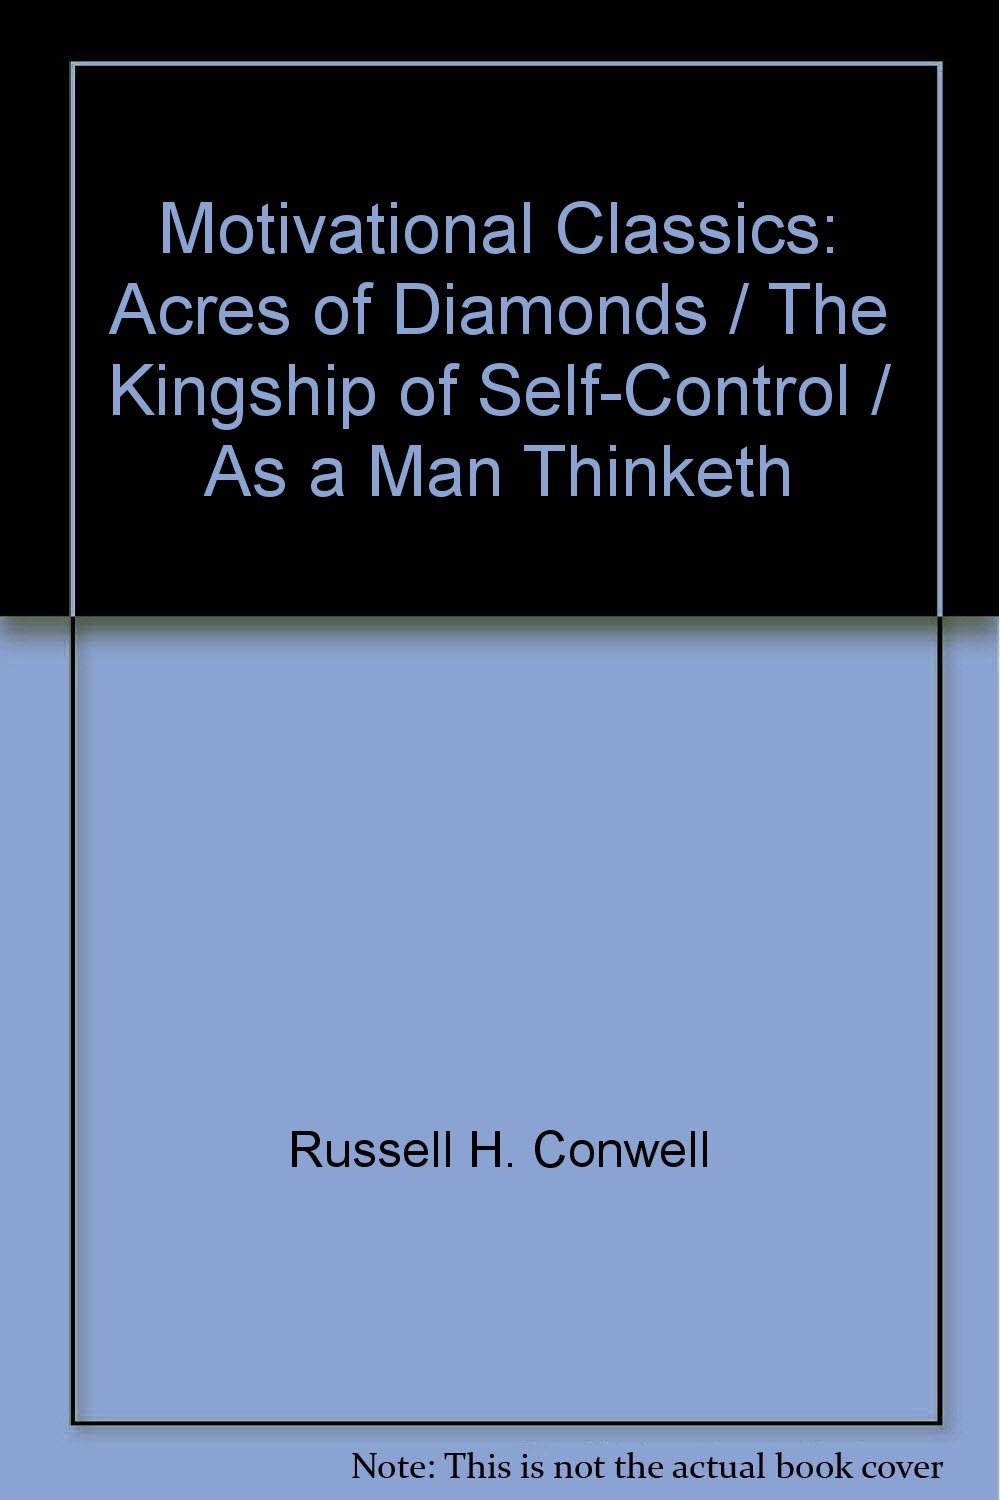 Motivational Classics: Acres of Diamonds, As a Man Thinketh, The Kingship of Self-Control